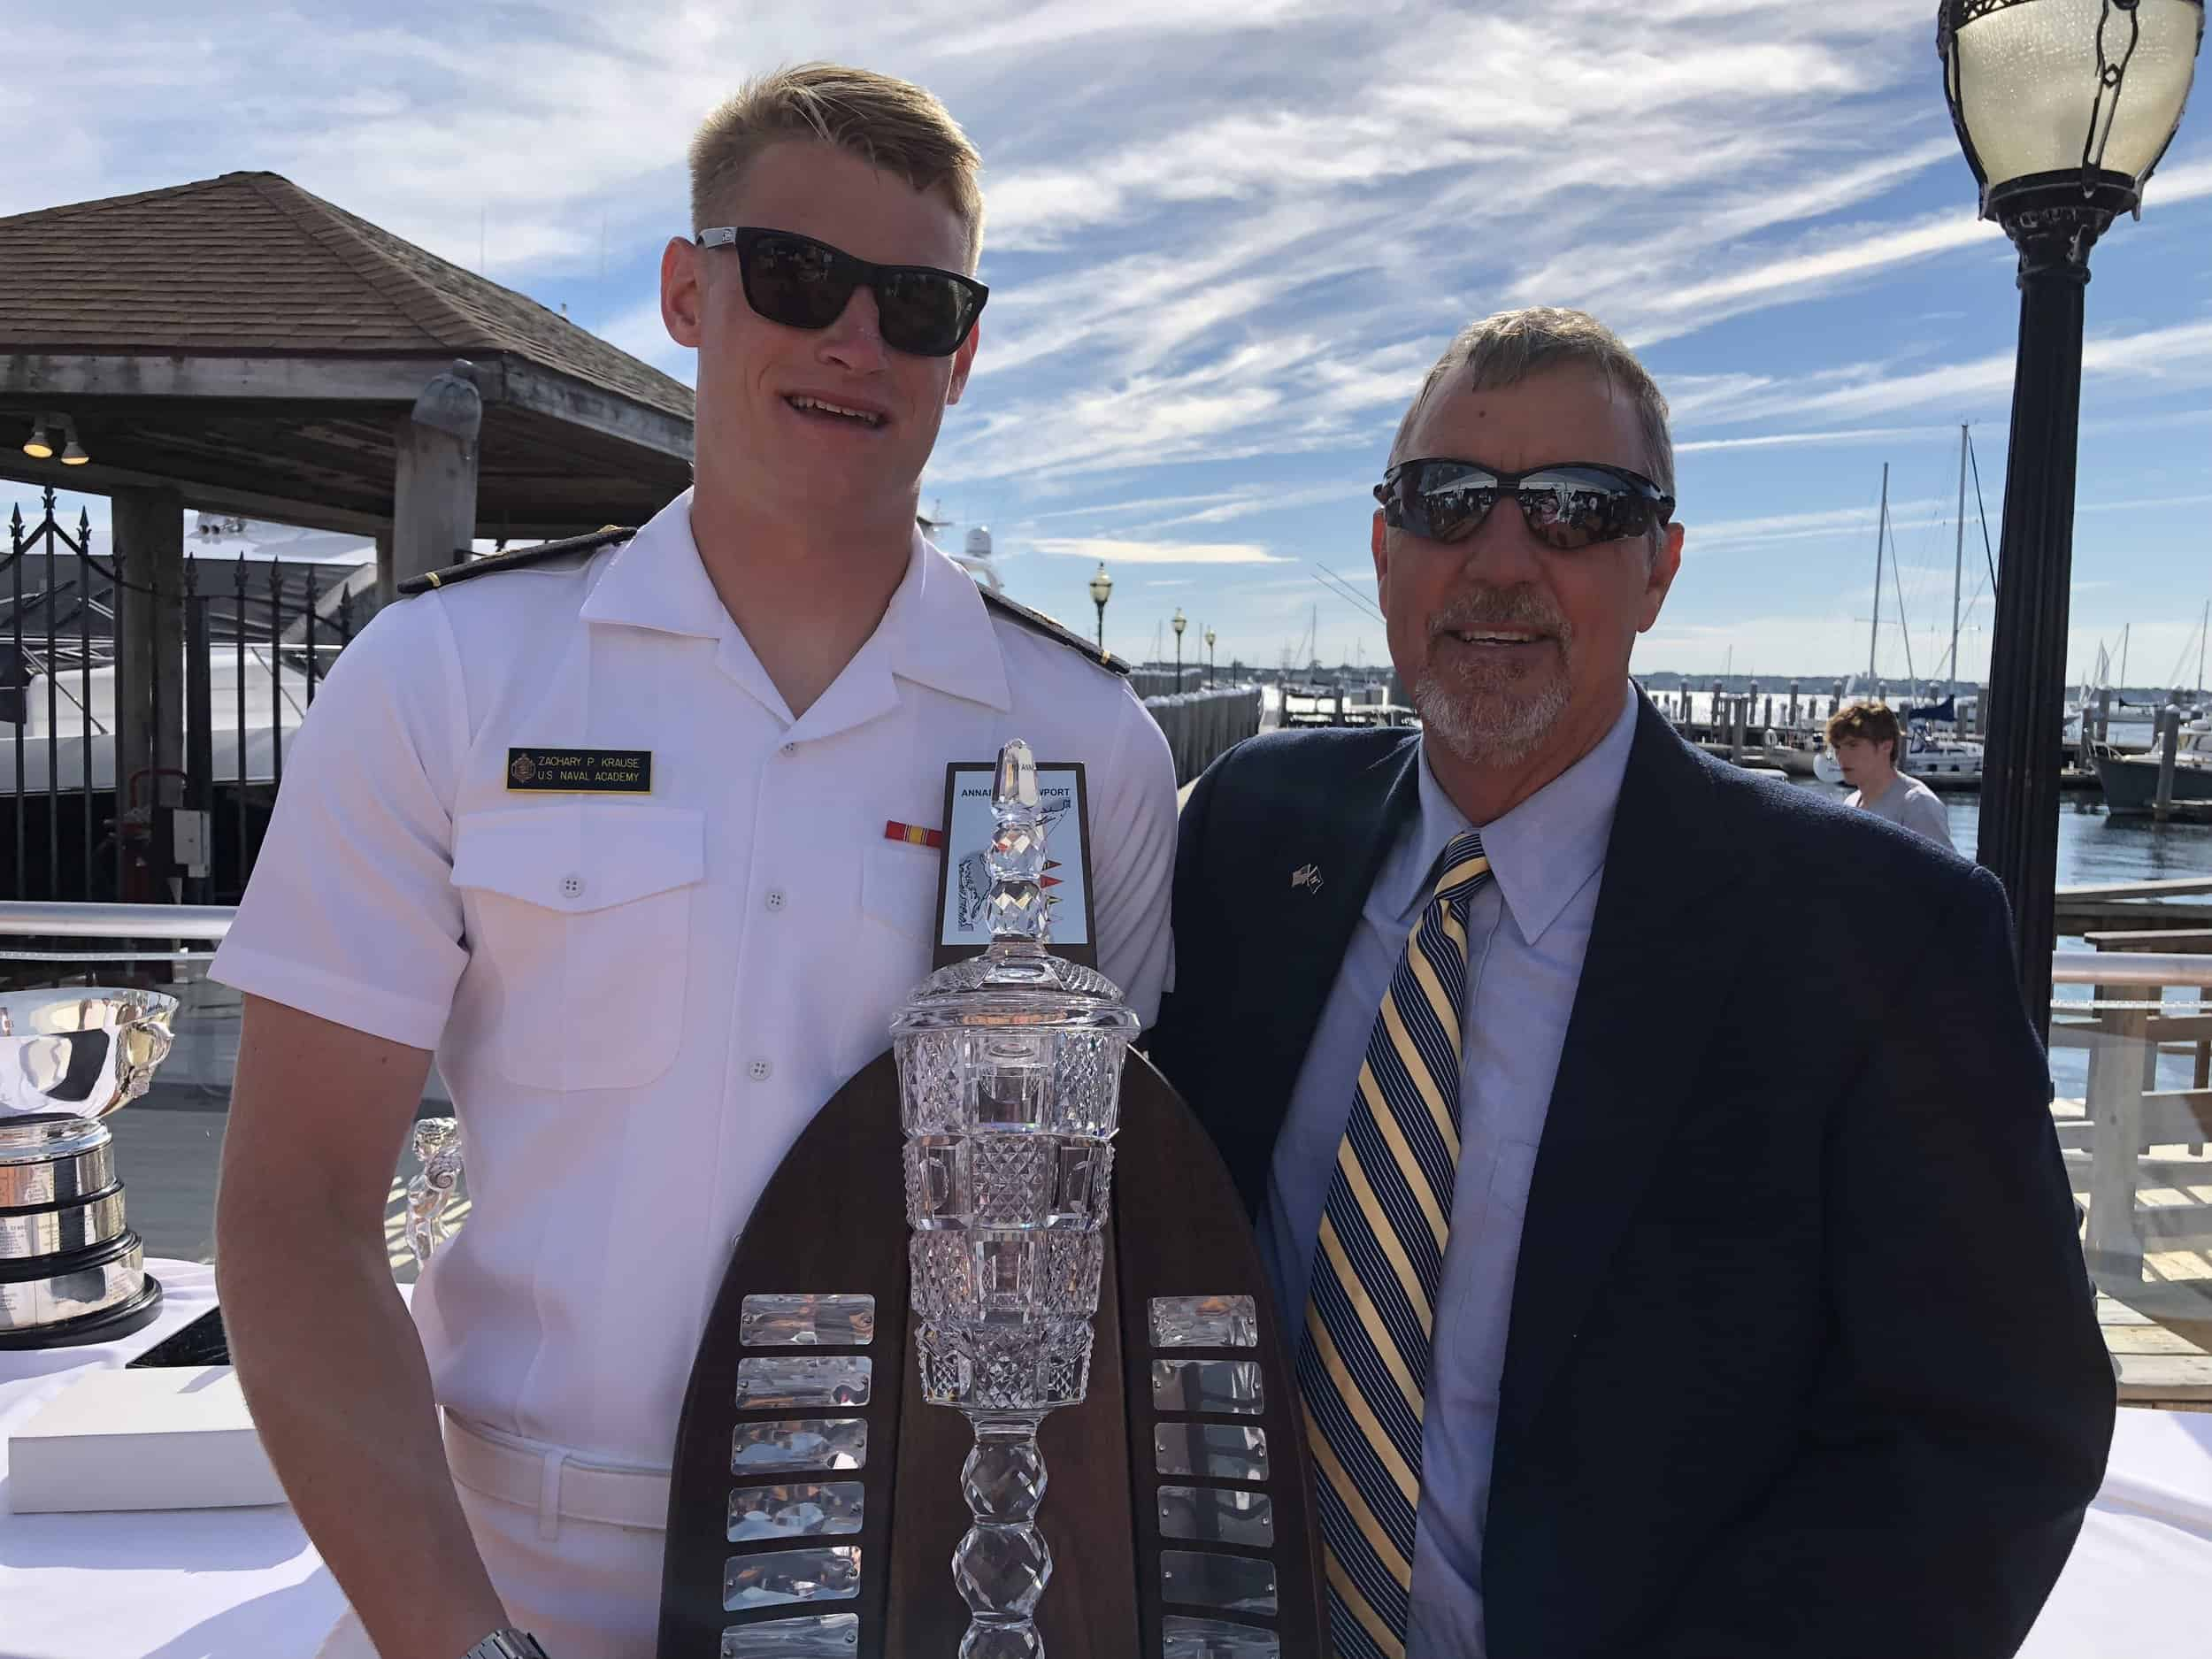 Navy Offshore Sailing Team Wins Big at Annapolis-to-Newport Race